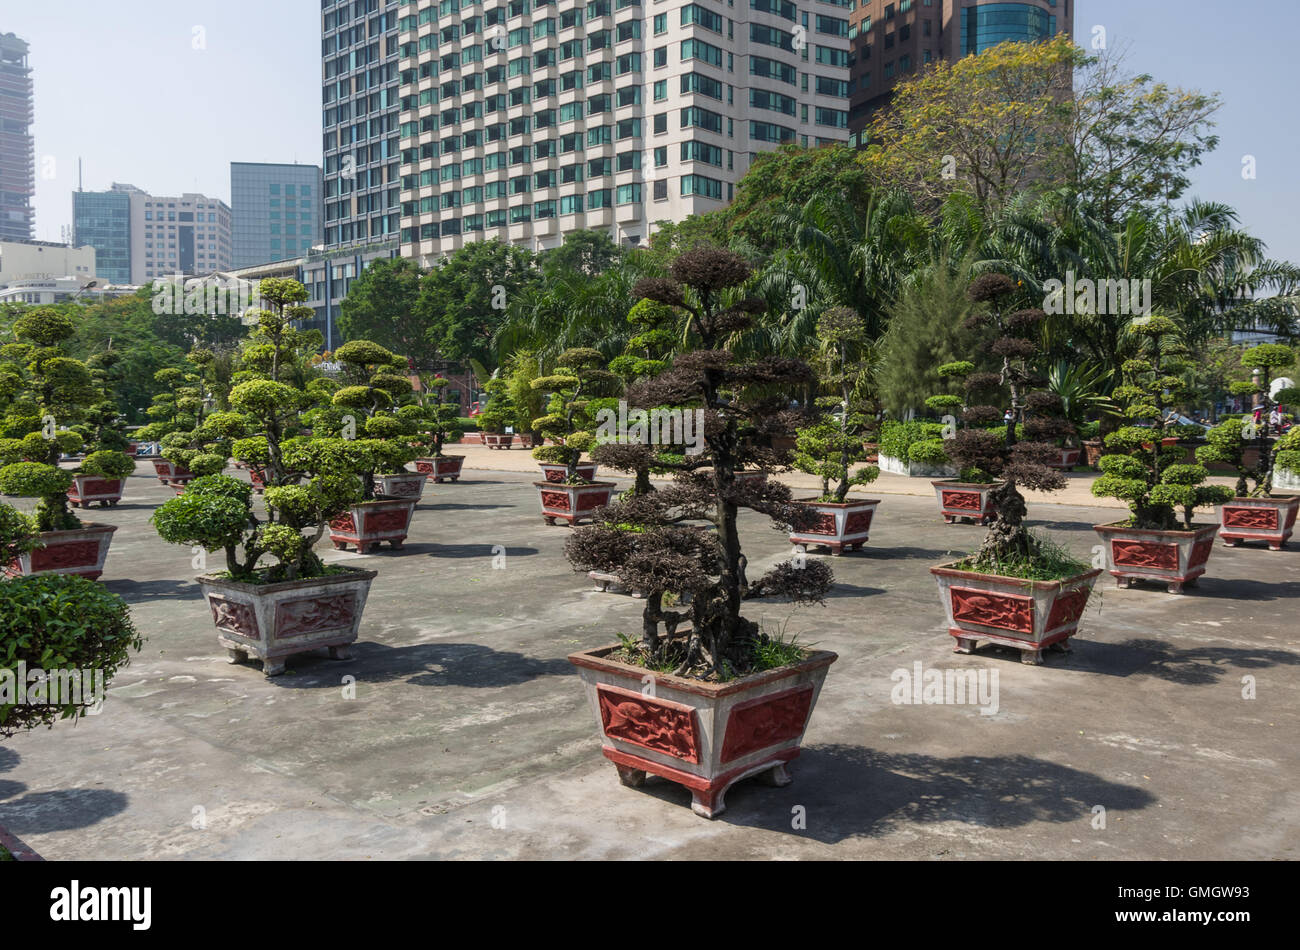 bonsai tree for office. Square With Little Bonsai Tree Modern Office Building On Background. Ho Chi Minh City, Vietnam For